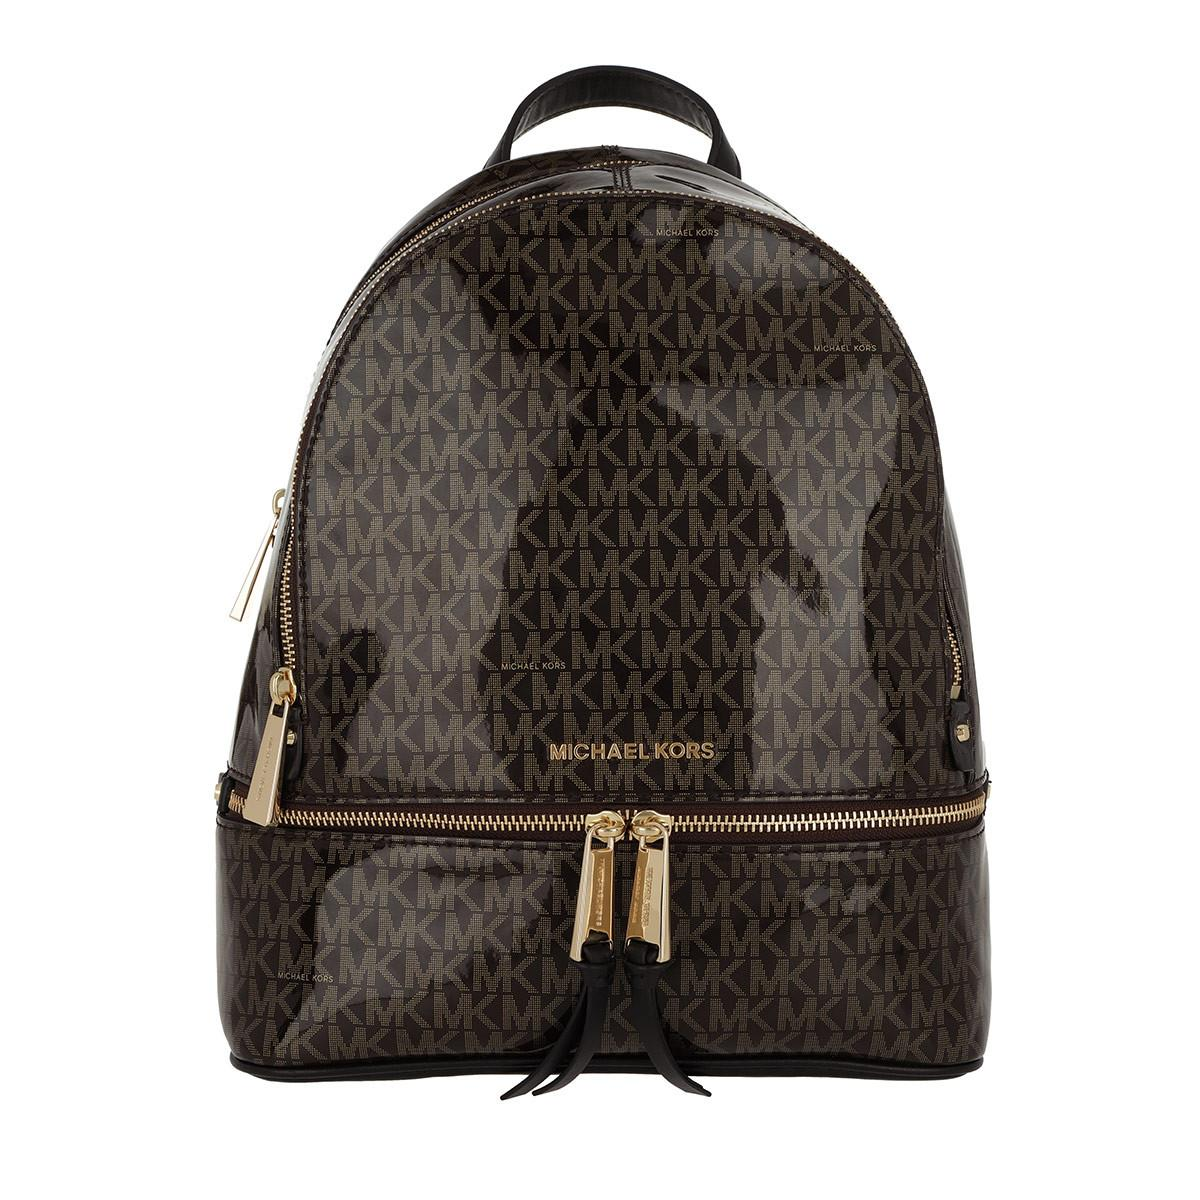 Michael Kors - Rhea Zip Md Backpack Brown gold - Lyst. View fullscreen 6c5be1477c